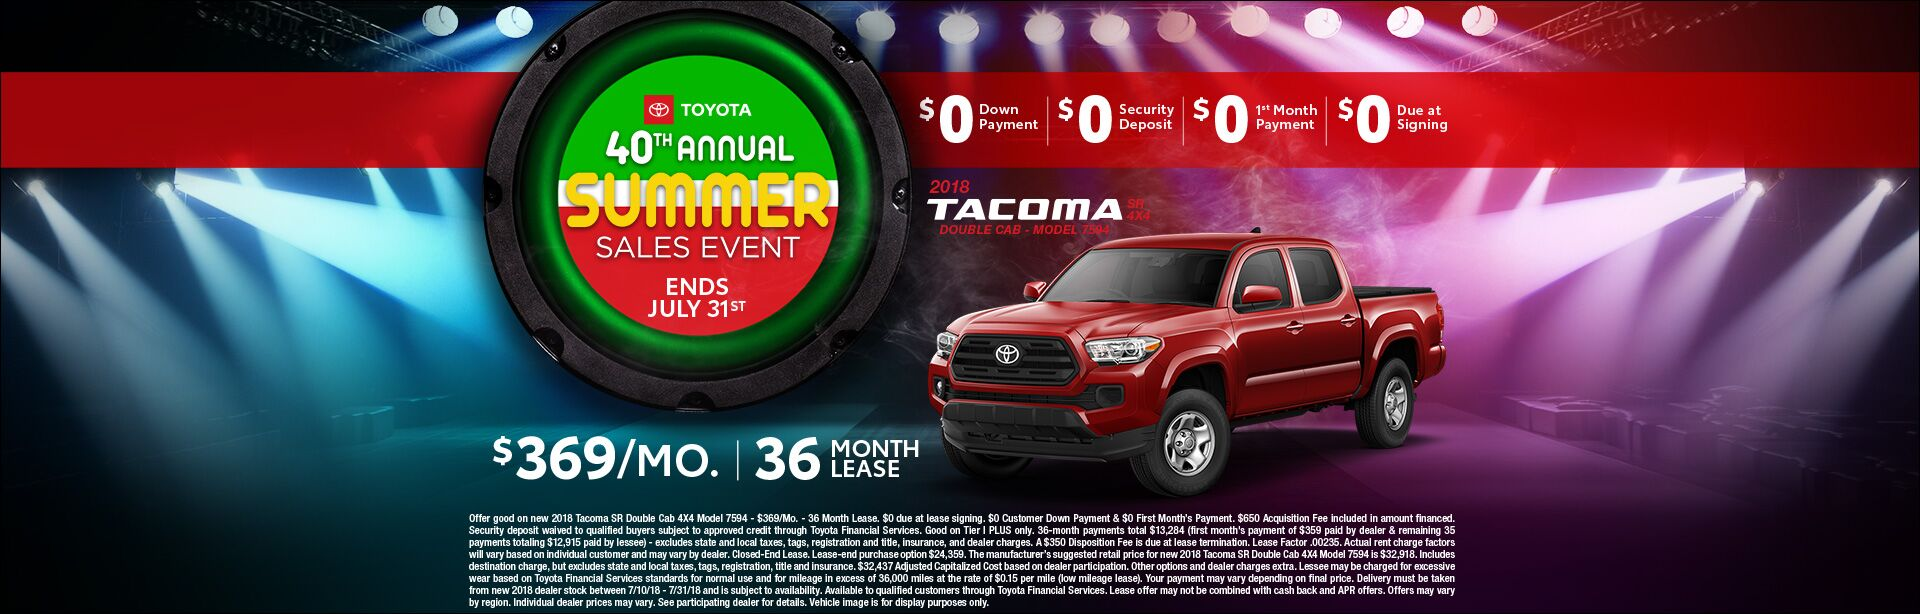 Toyota Summer Sales Event Tacoma Lease